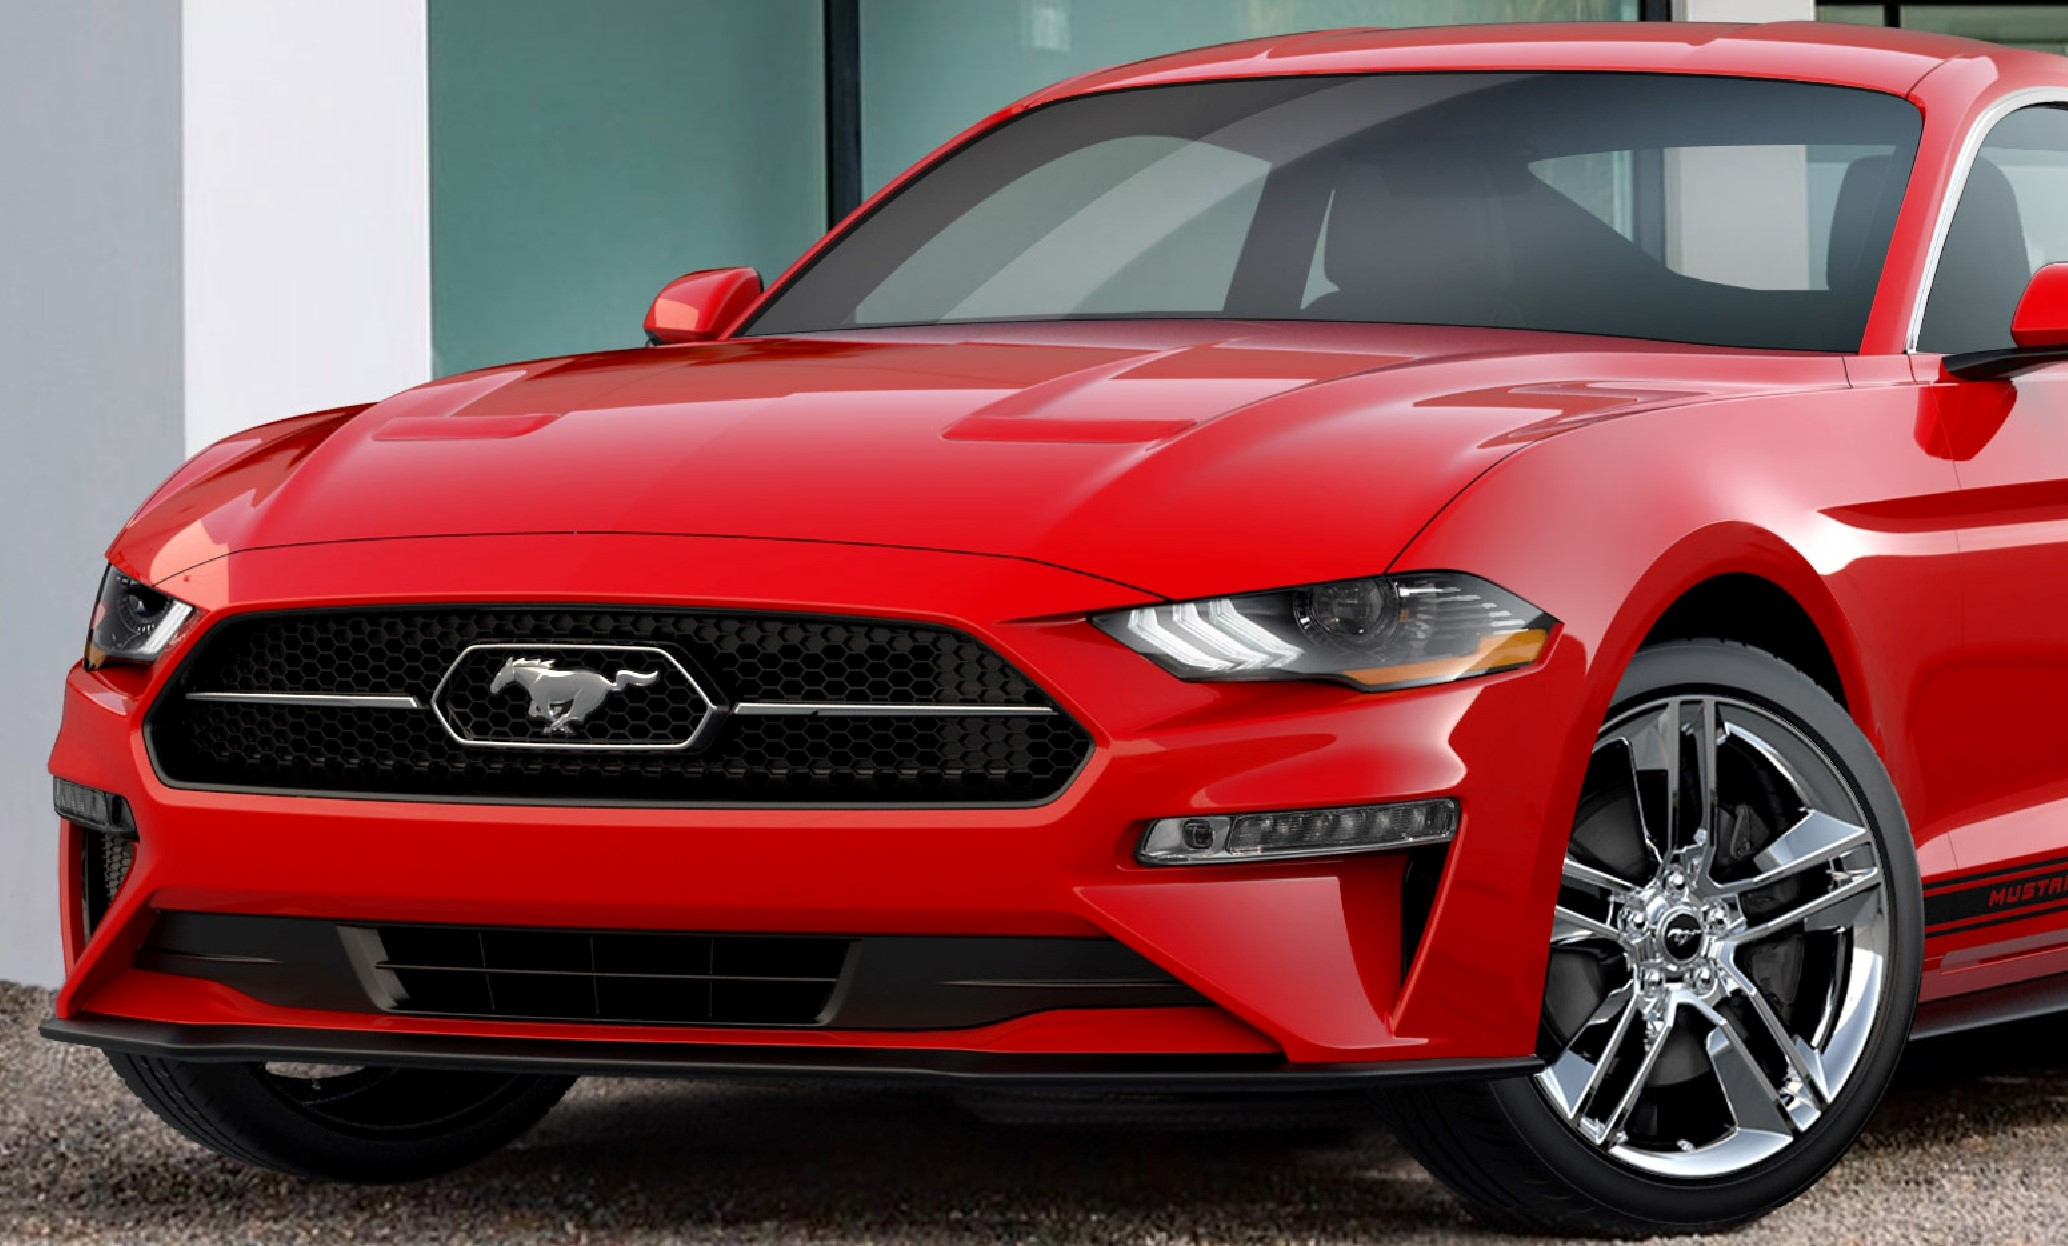 Ford Mustang 2017 Ecoboost >> NEW PONY PACKAGE FOR 2018 MUSTANG - myAutoWorld.com